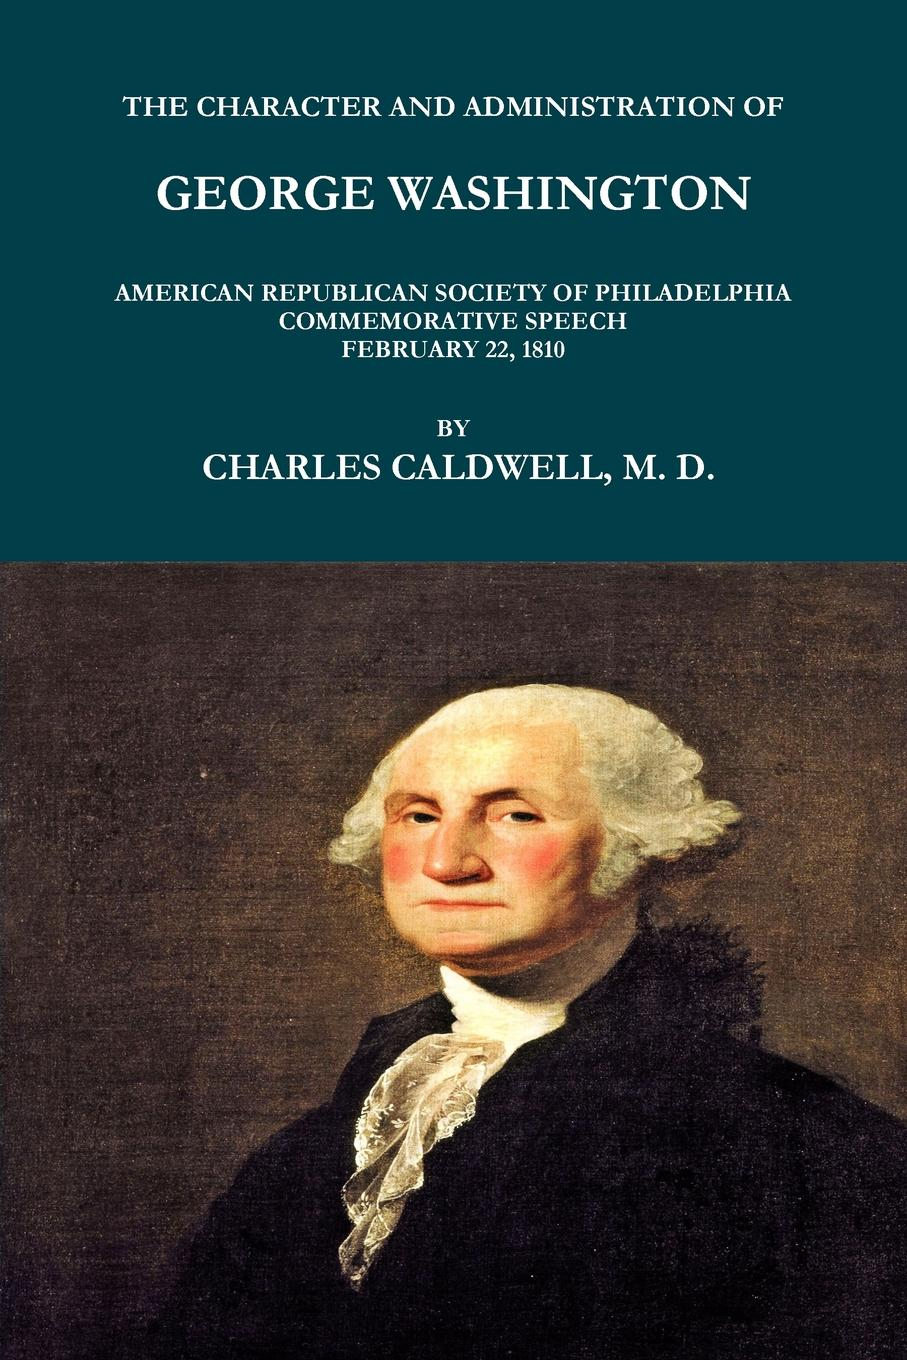 CHARLES CALDWELL THE CHARACTER AND ADMINISTRATION OF GEORGE WASHINGTON. AMERICAN REPUBLICAN SOCIETY PHILADELPHIA COMMEMORATIVE SPEECH, FEBRUARY 22, 1810.